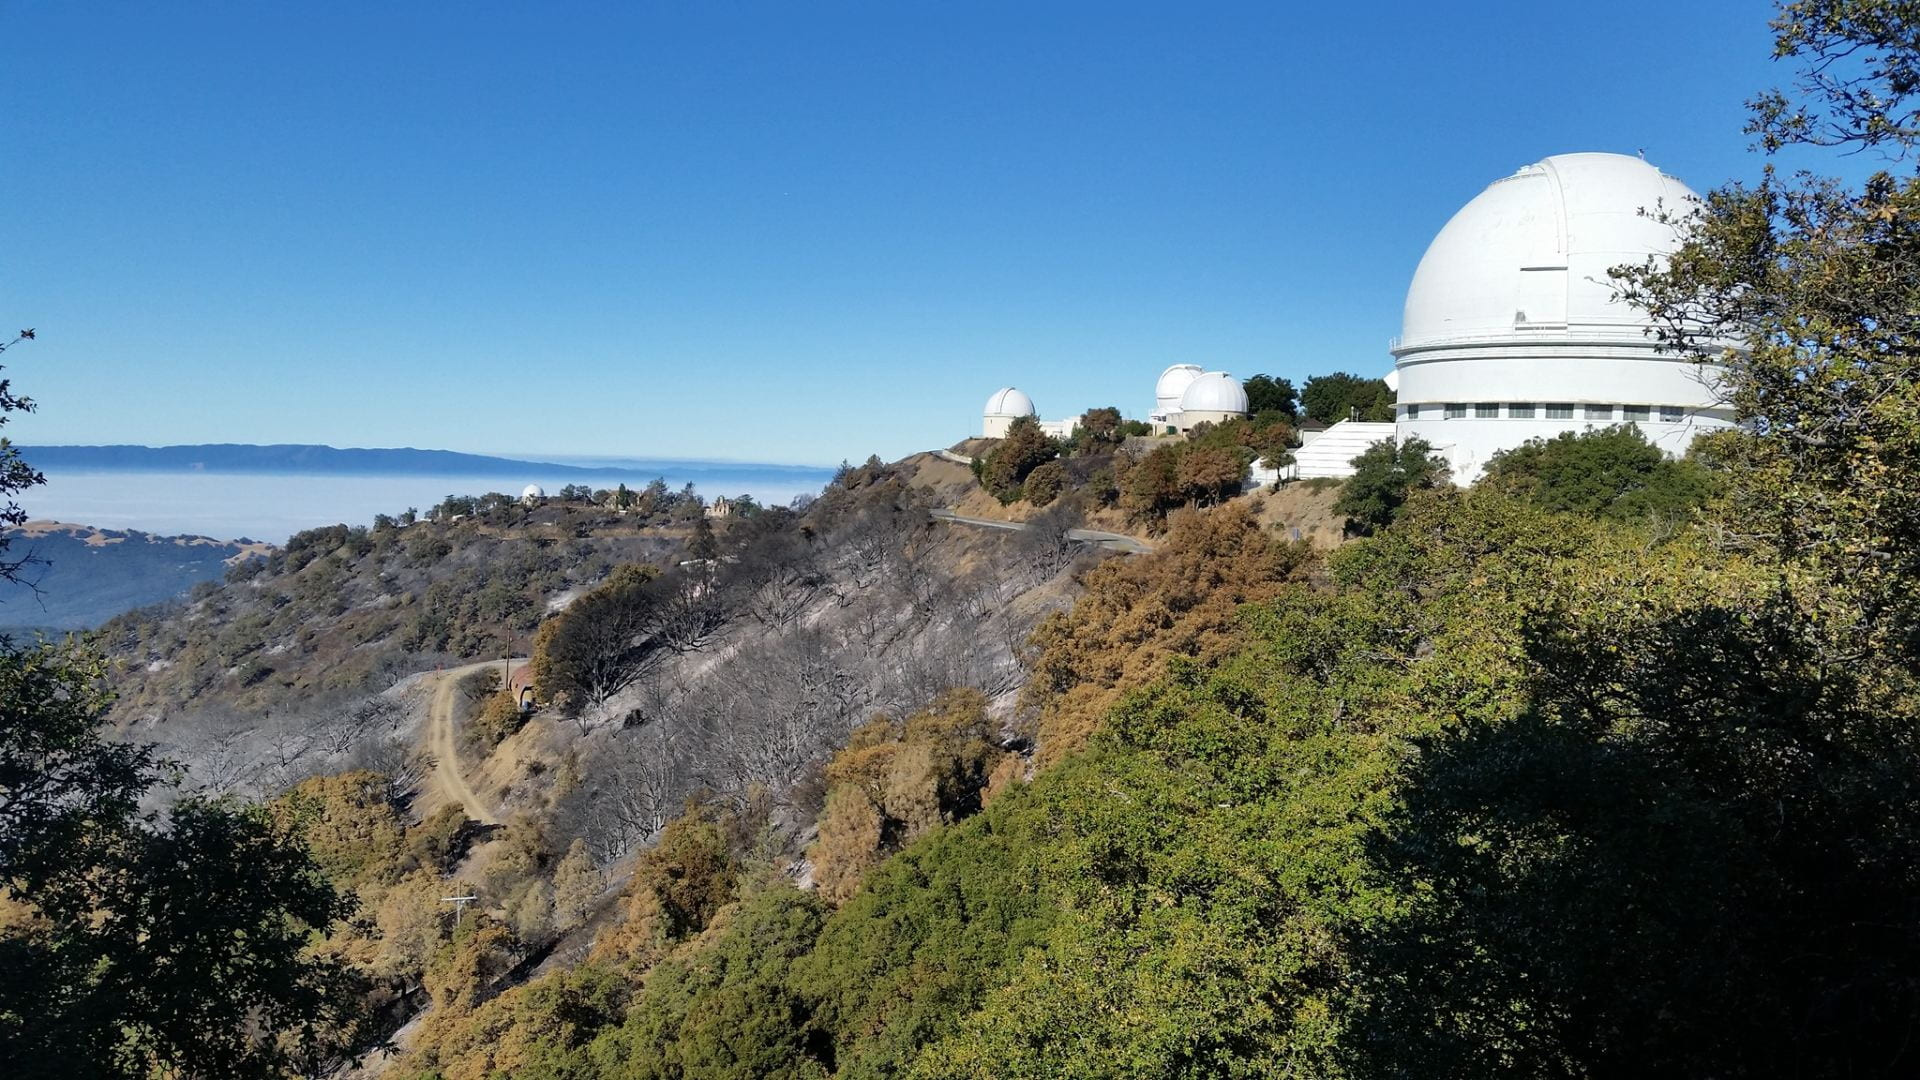 Lick – The Observatory was narrowly saved from the wildfire